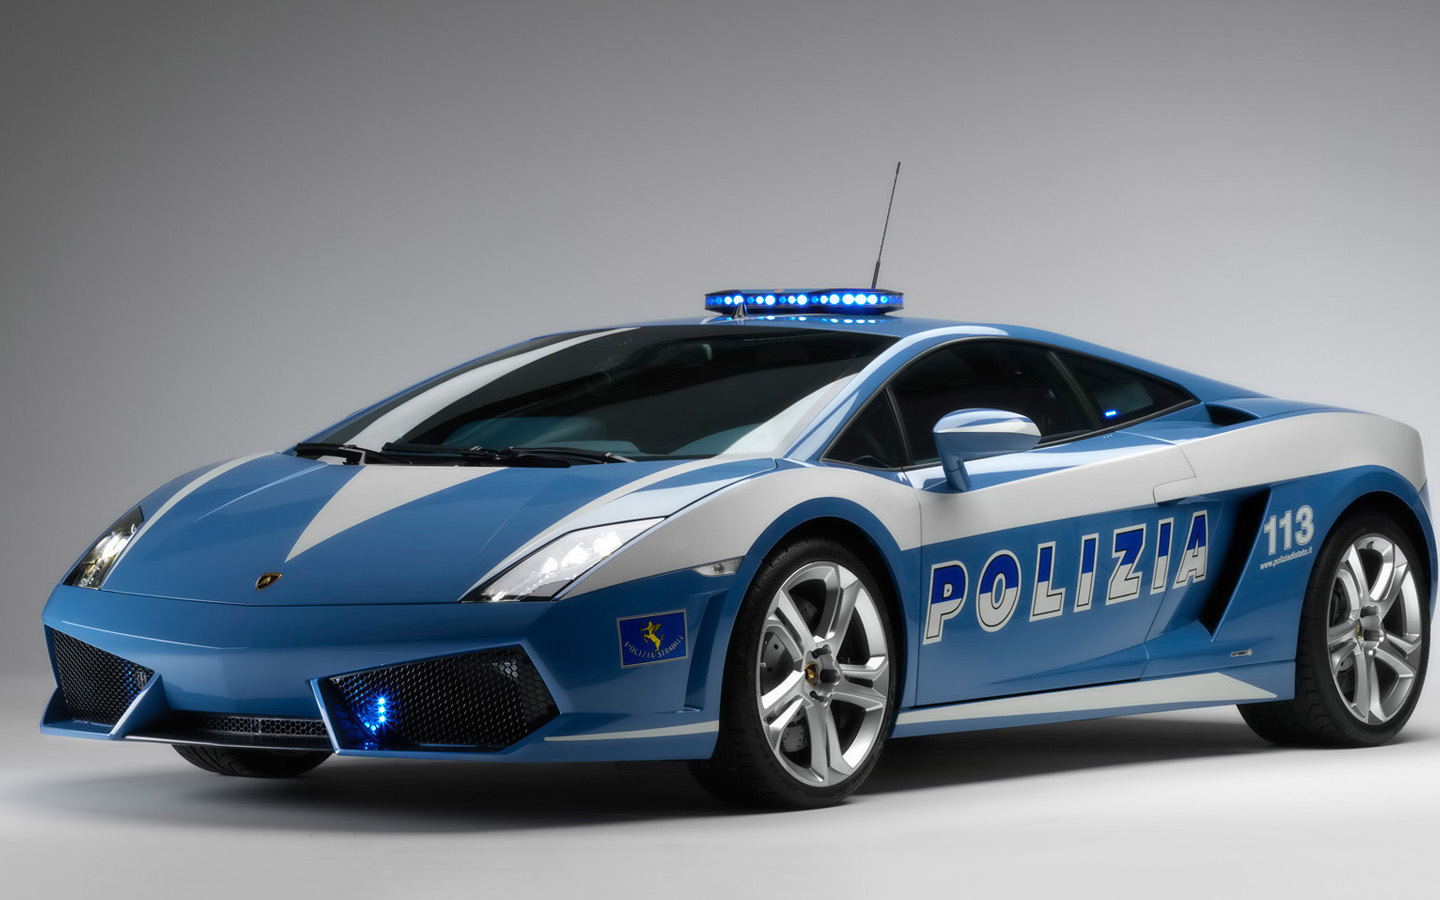 2009 Lamborghini Gallardo LP560 Police Car 484.63 Kb